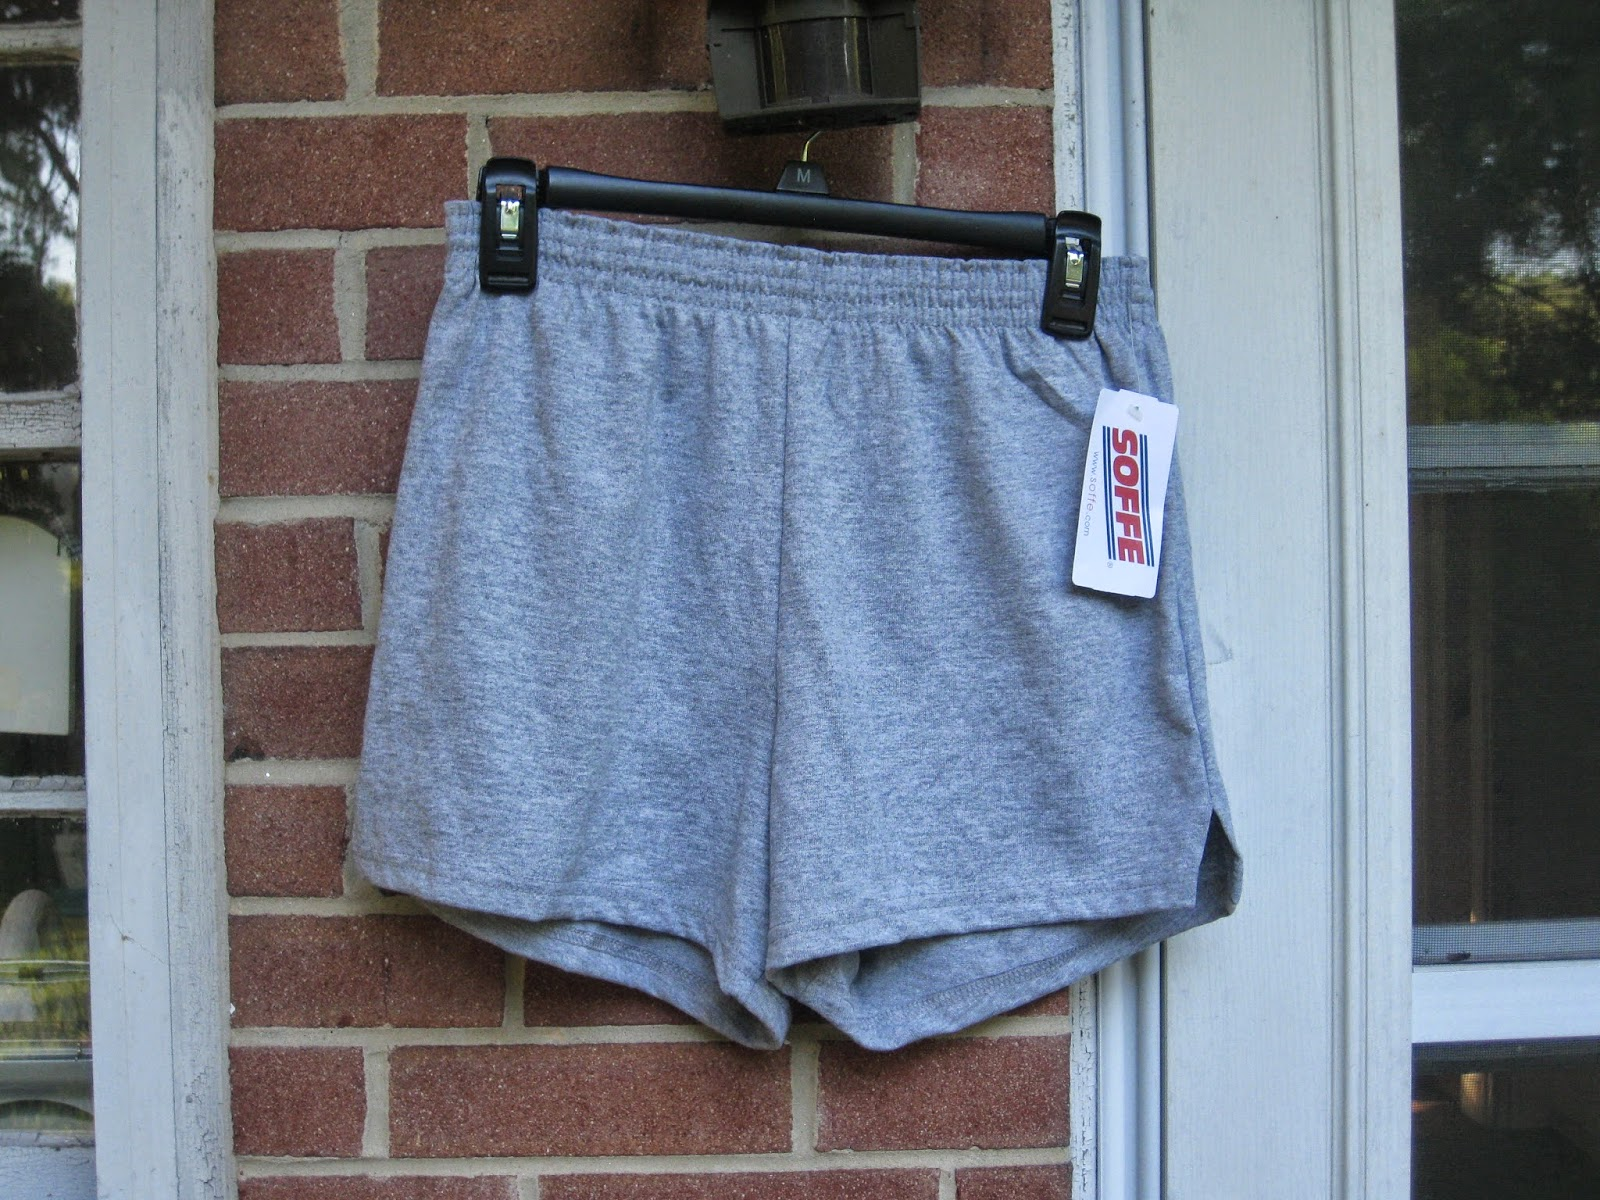 Grey Oxford Soffe Fold-Over Shorts in Size Medium